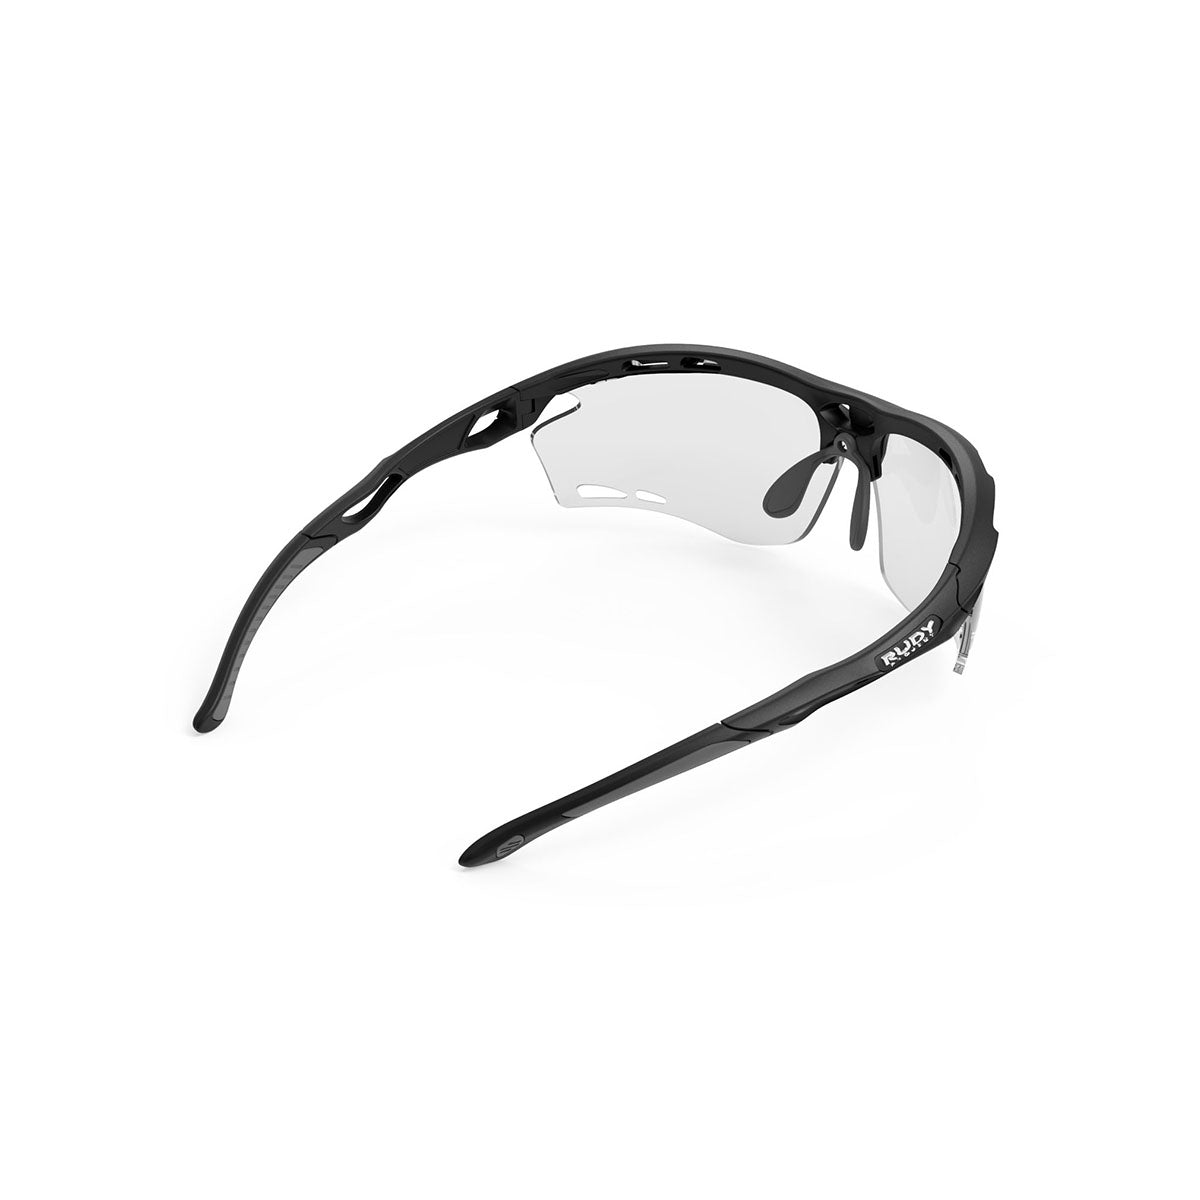 Rudy Project - Propulse - frame color: Matte Black - lens color: ImpactX-2 Photochromic Clear to Black - Bumper Color:  - photo angle: Top Back Angle Variant Hover Image